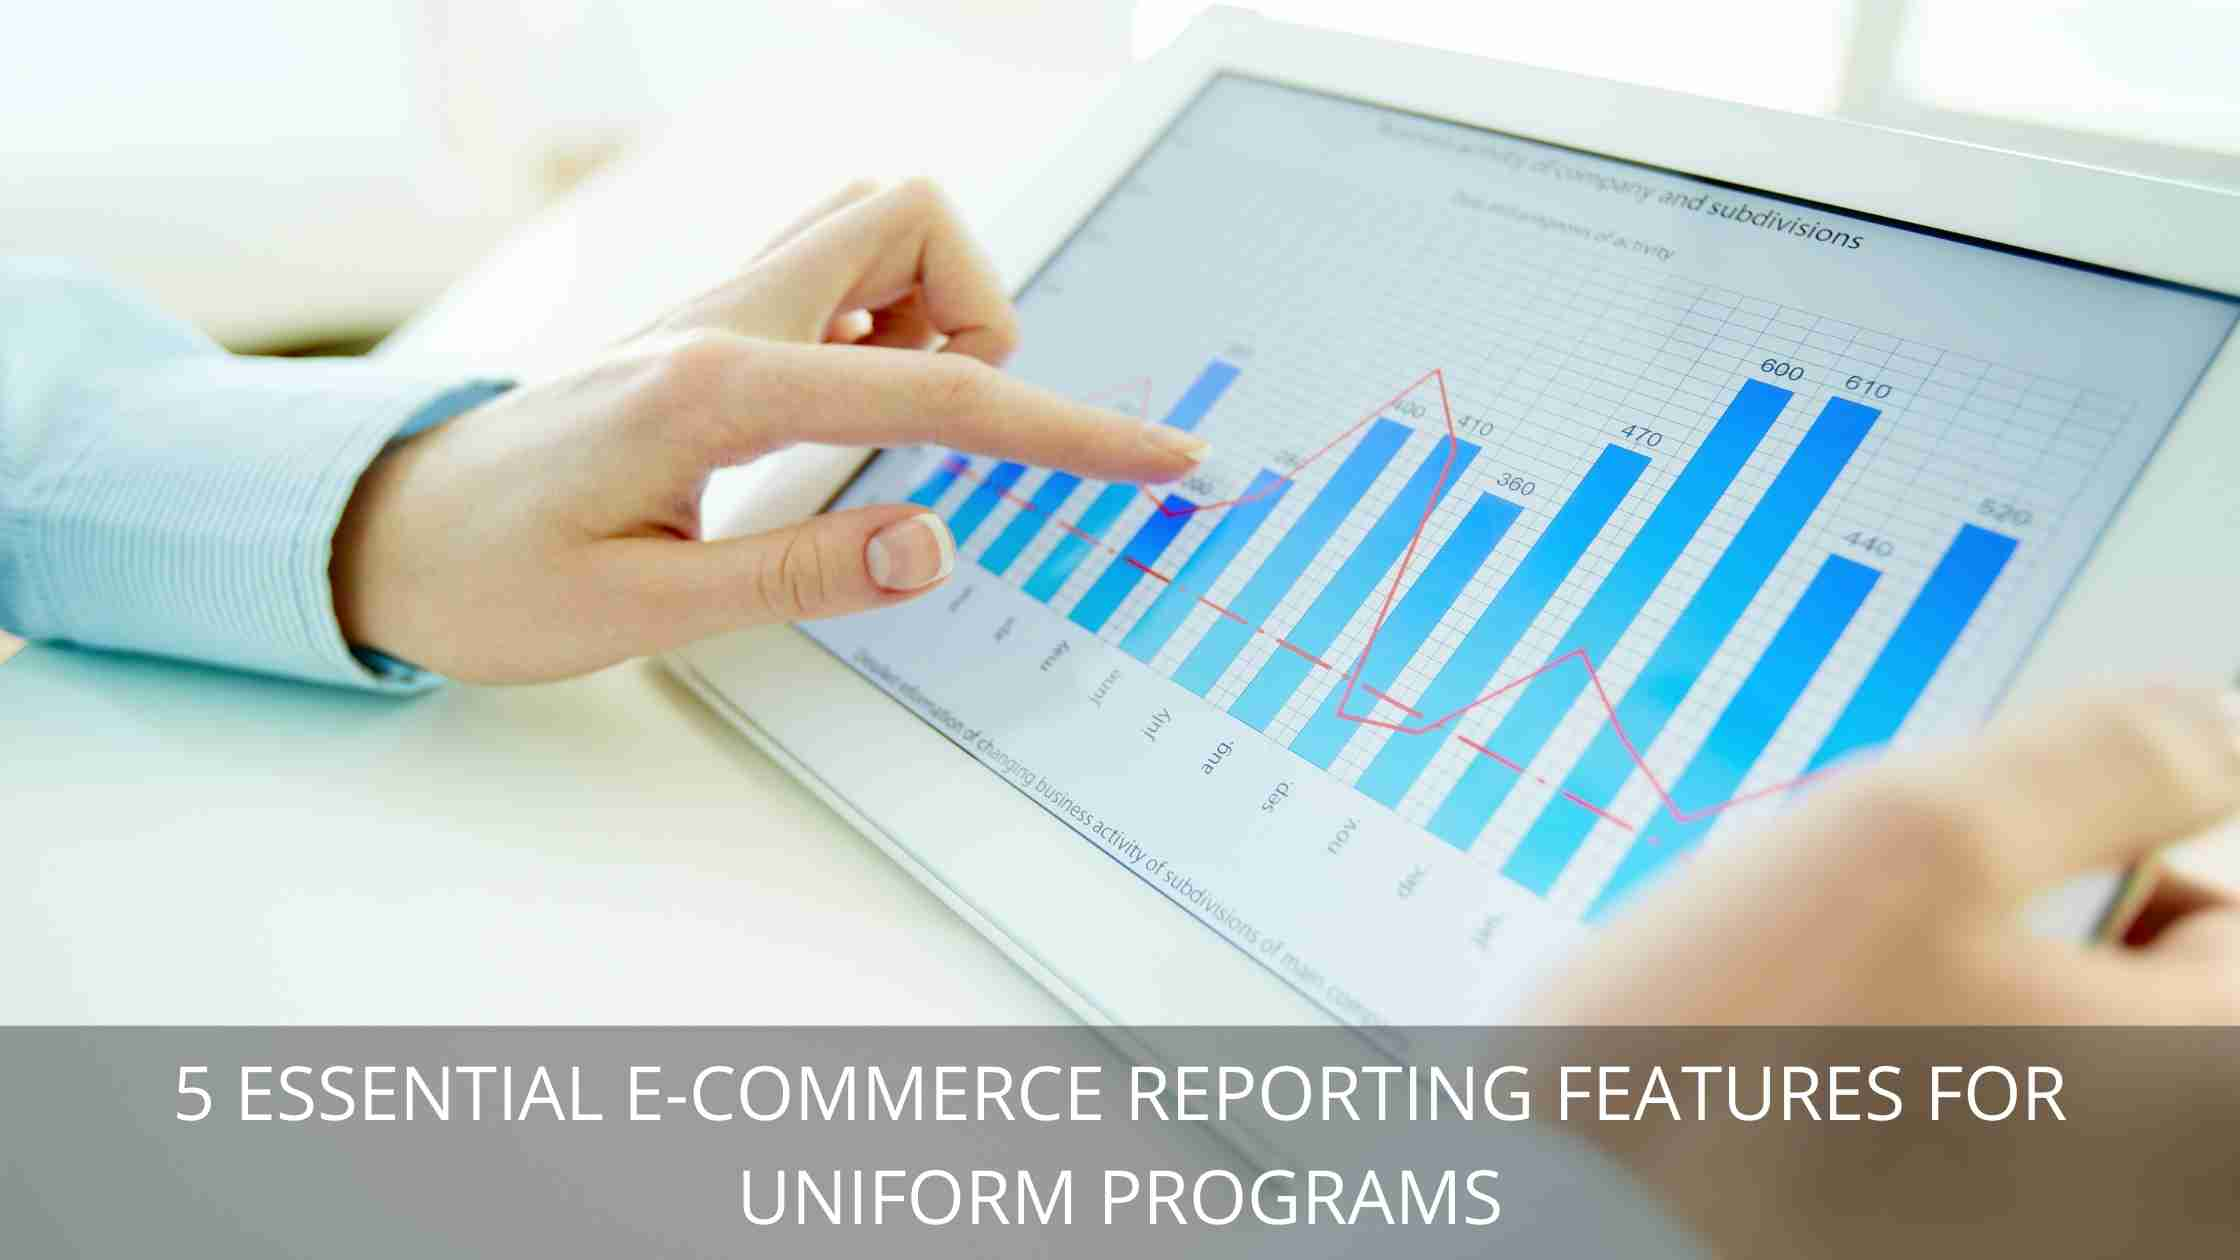 essential e-commerce reporting features for uniform programs